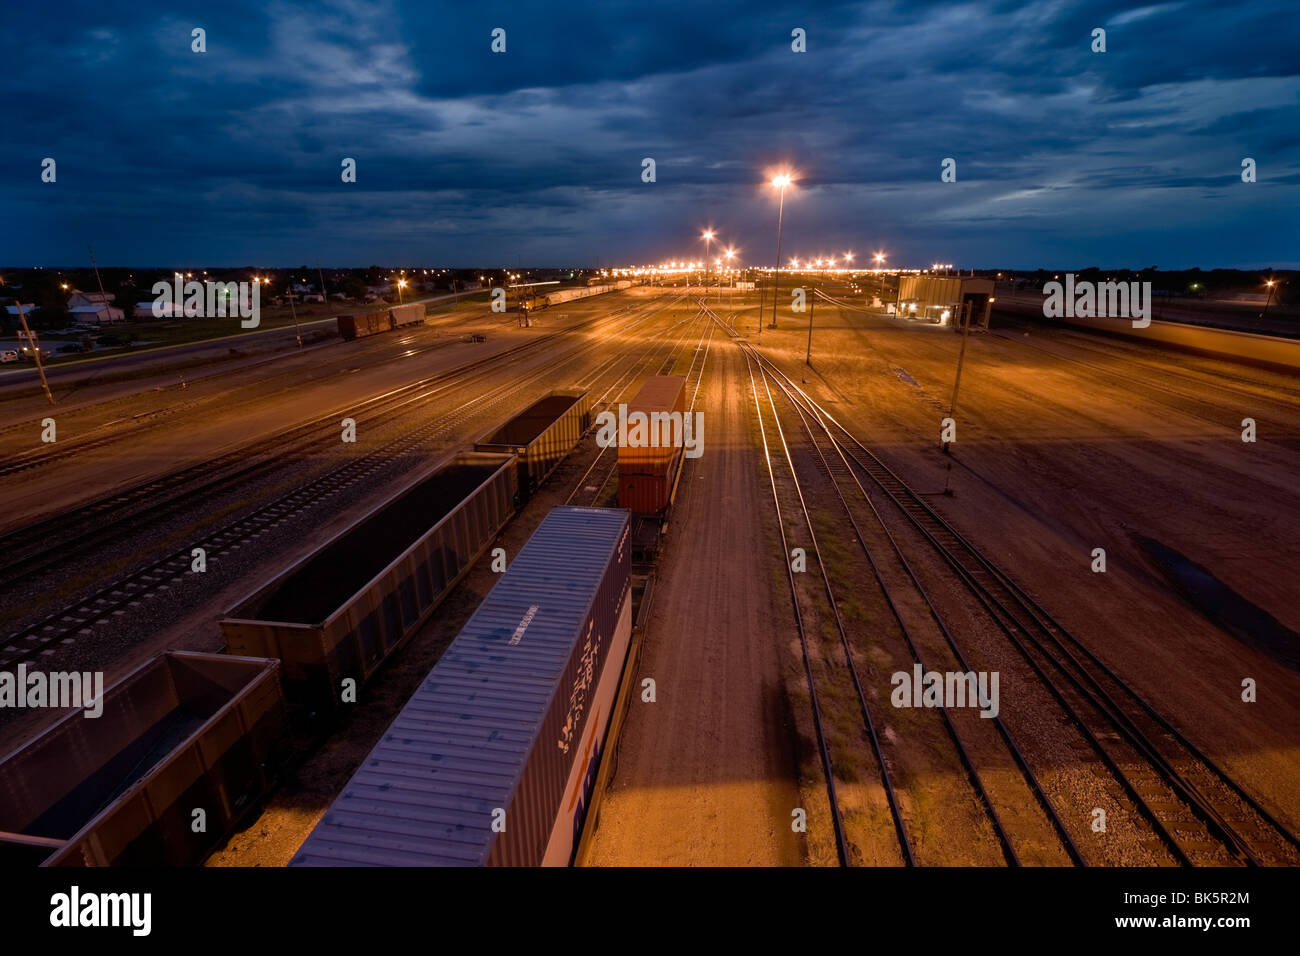 https://c7.alamy.com/comp/BK5R2M/the-eastern-entrance-to-bailey-railway-yard-in-north-platte-nebraska-BK5R2M.jpg